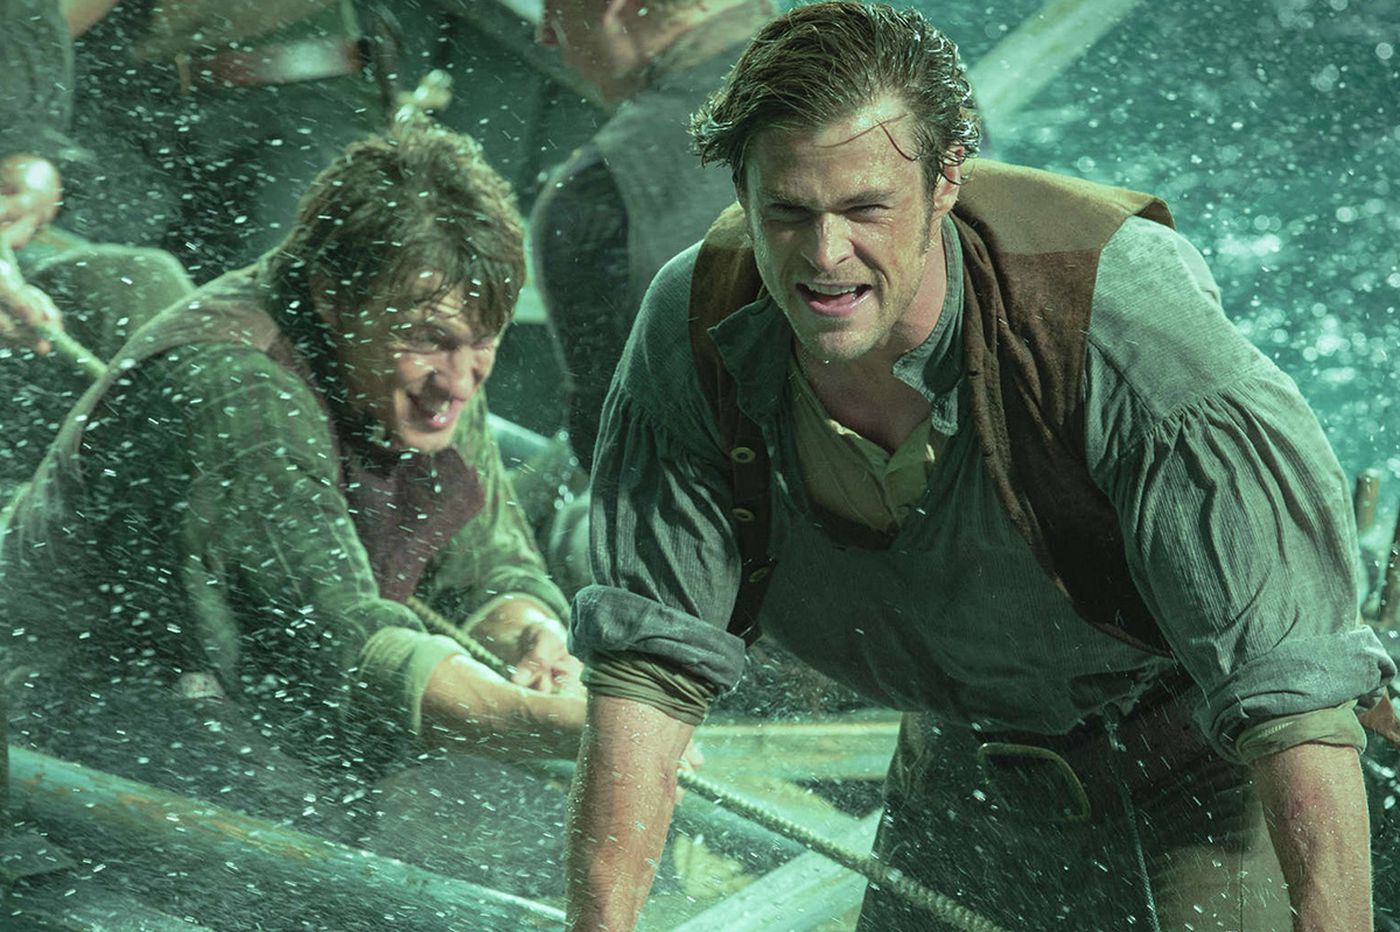 'Heart of the Sea': Captivating man vs. nature tale